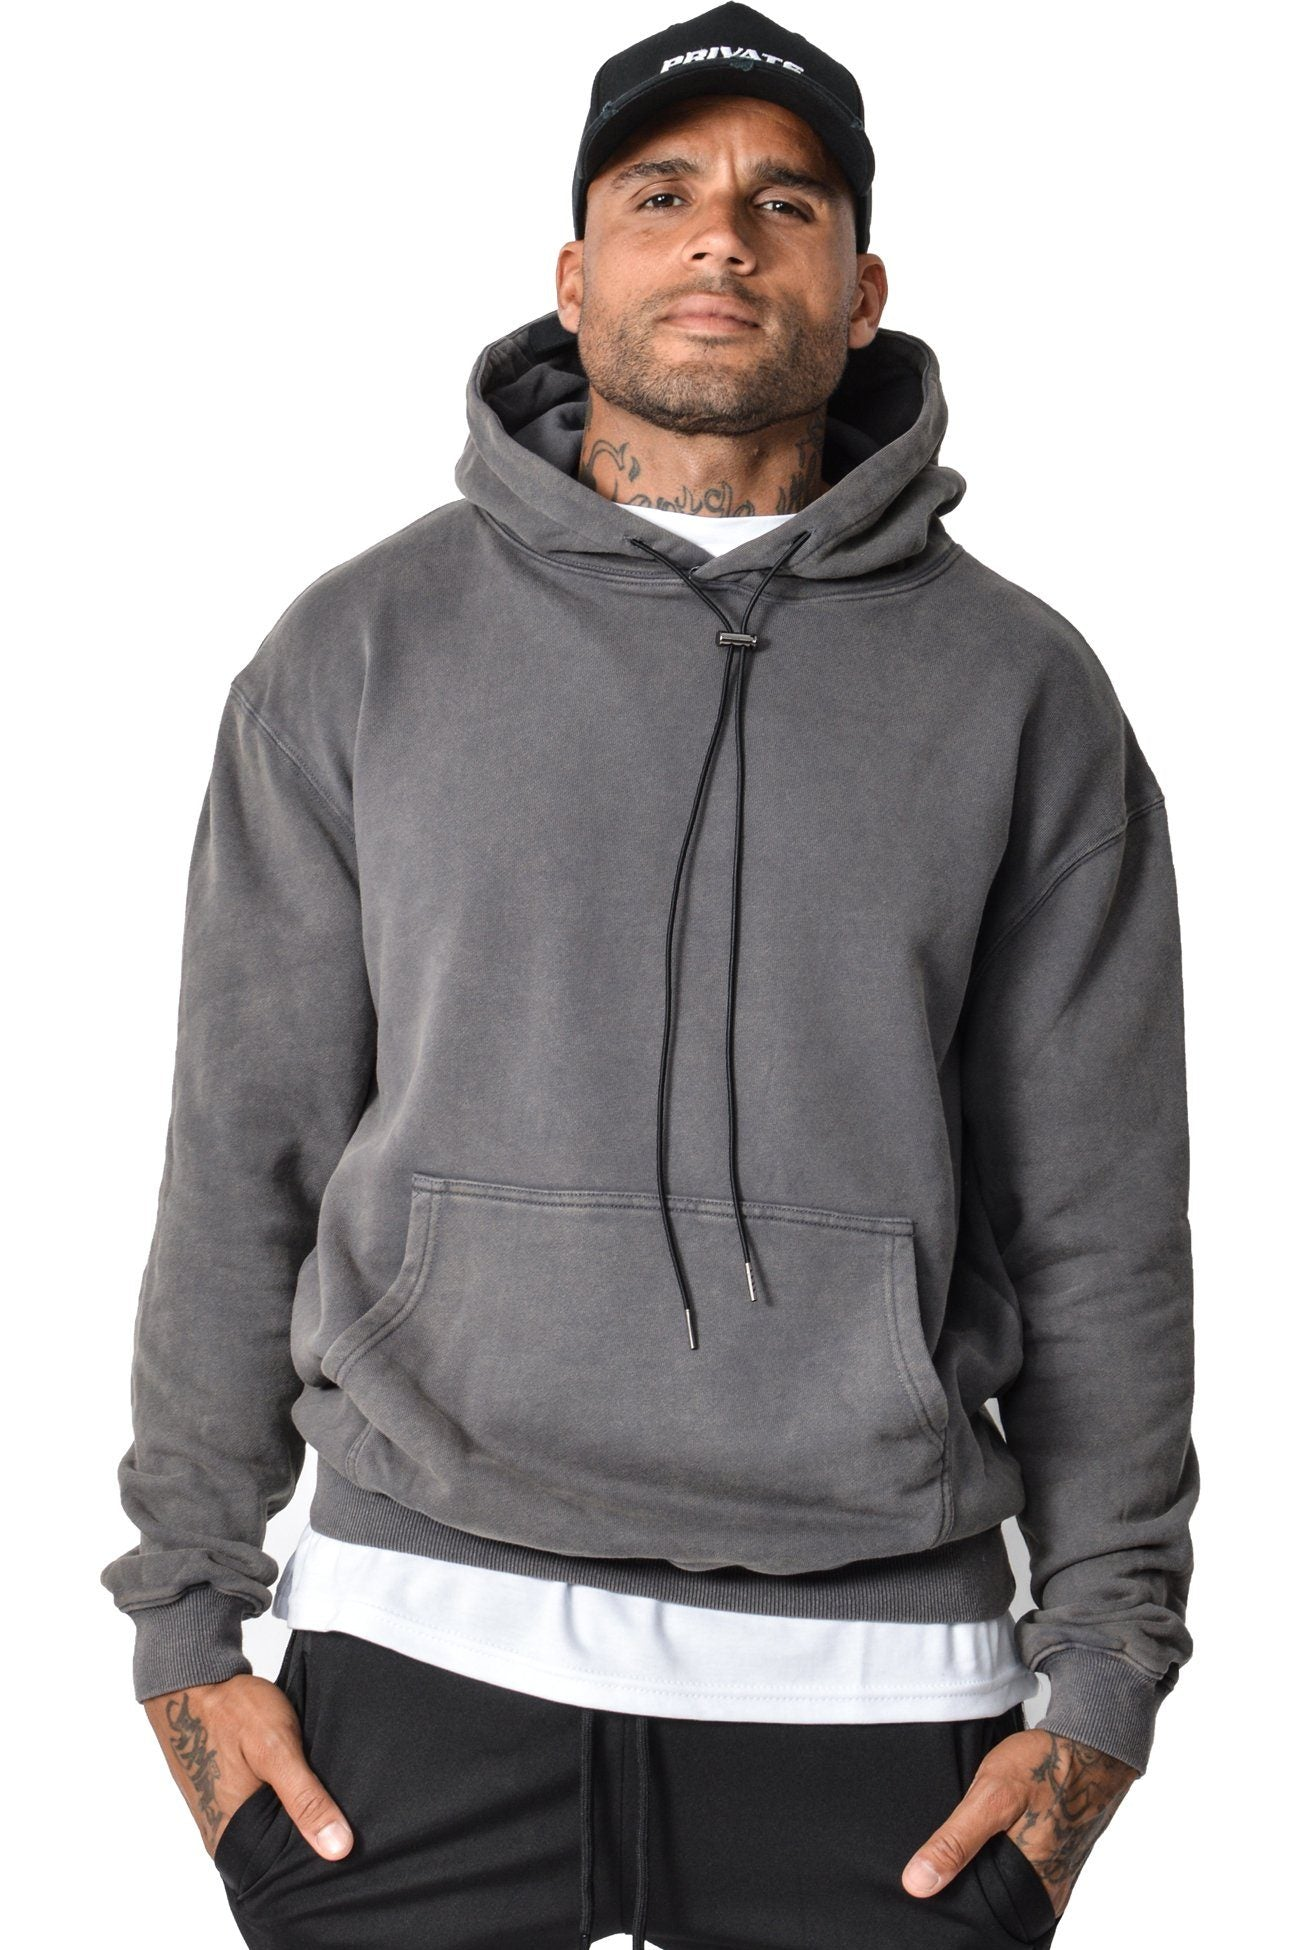 Basic Hoodie Washed Grey - PEGADOR - Dominate the Hype